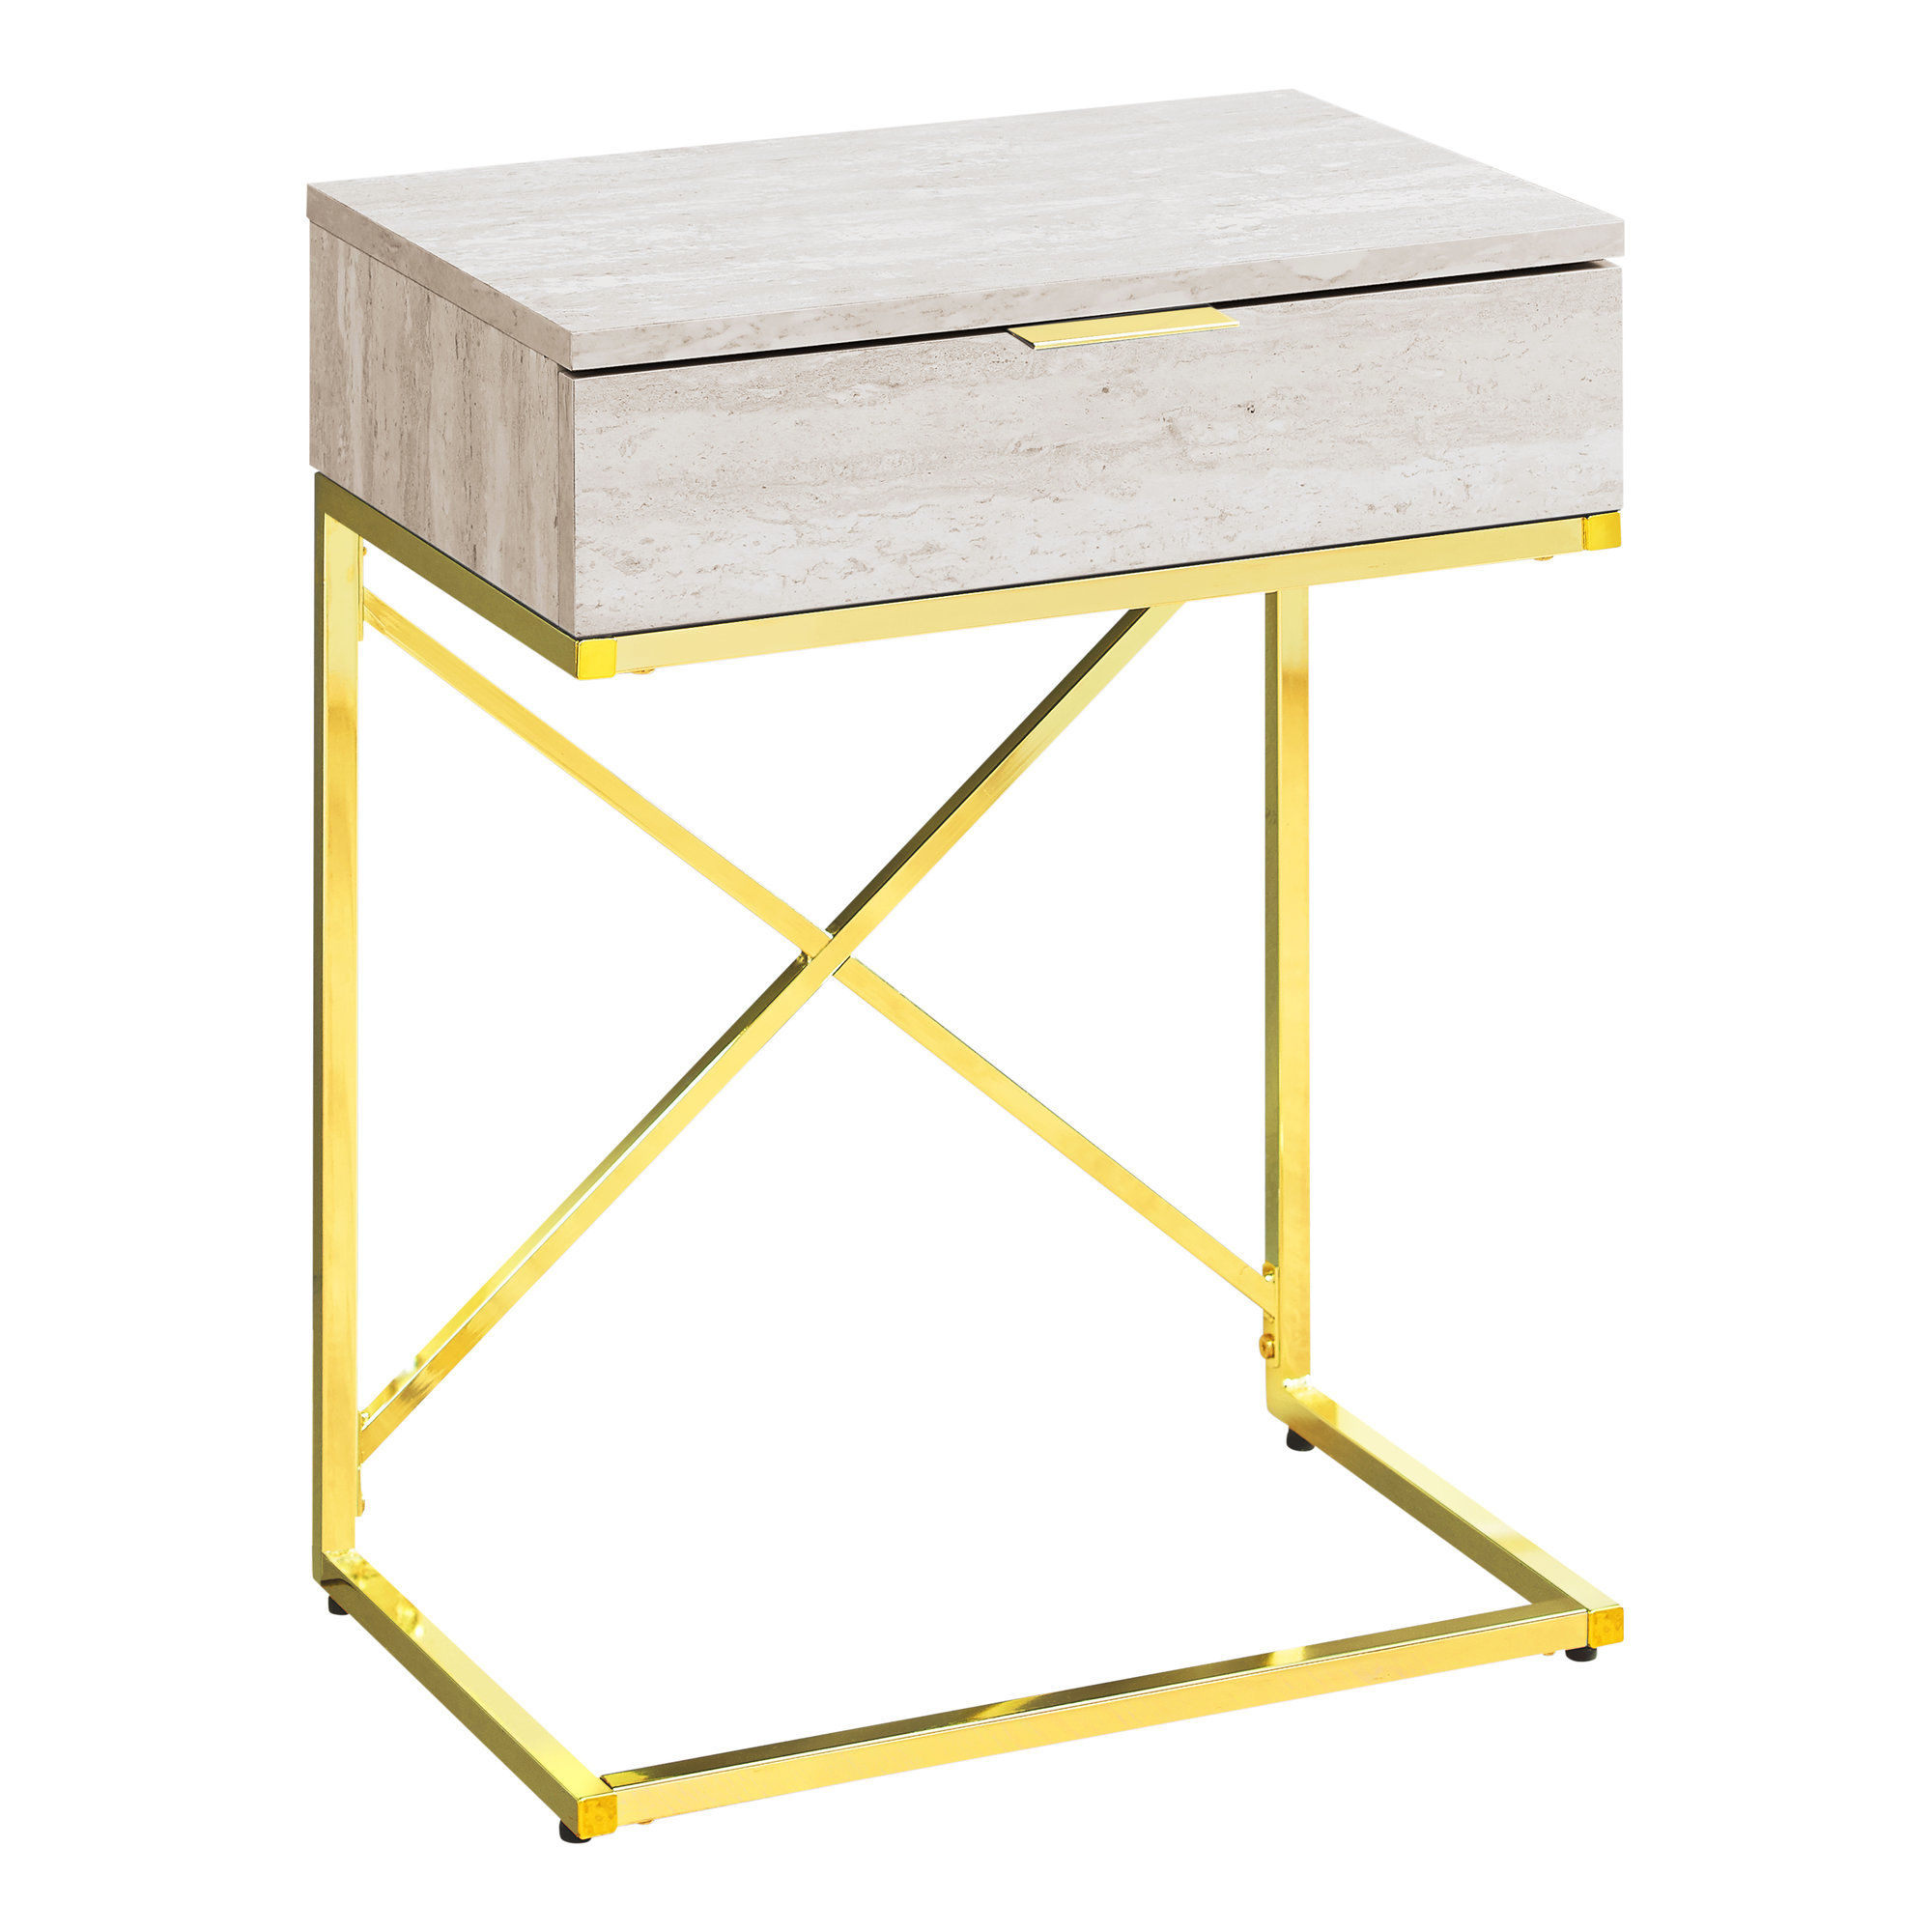 monarch specialties beige gold metal inch accent table the mnc click enlarge kmart marble skinny wine rack vintage wood side corner target threshold cabinet brass and glass coffee